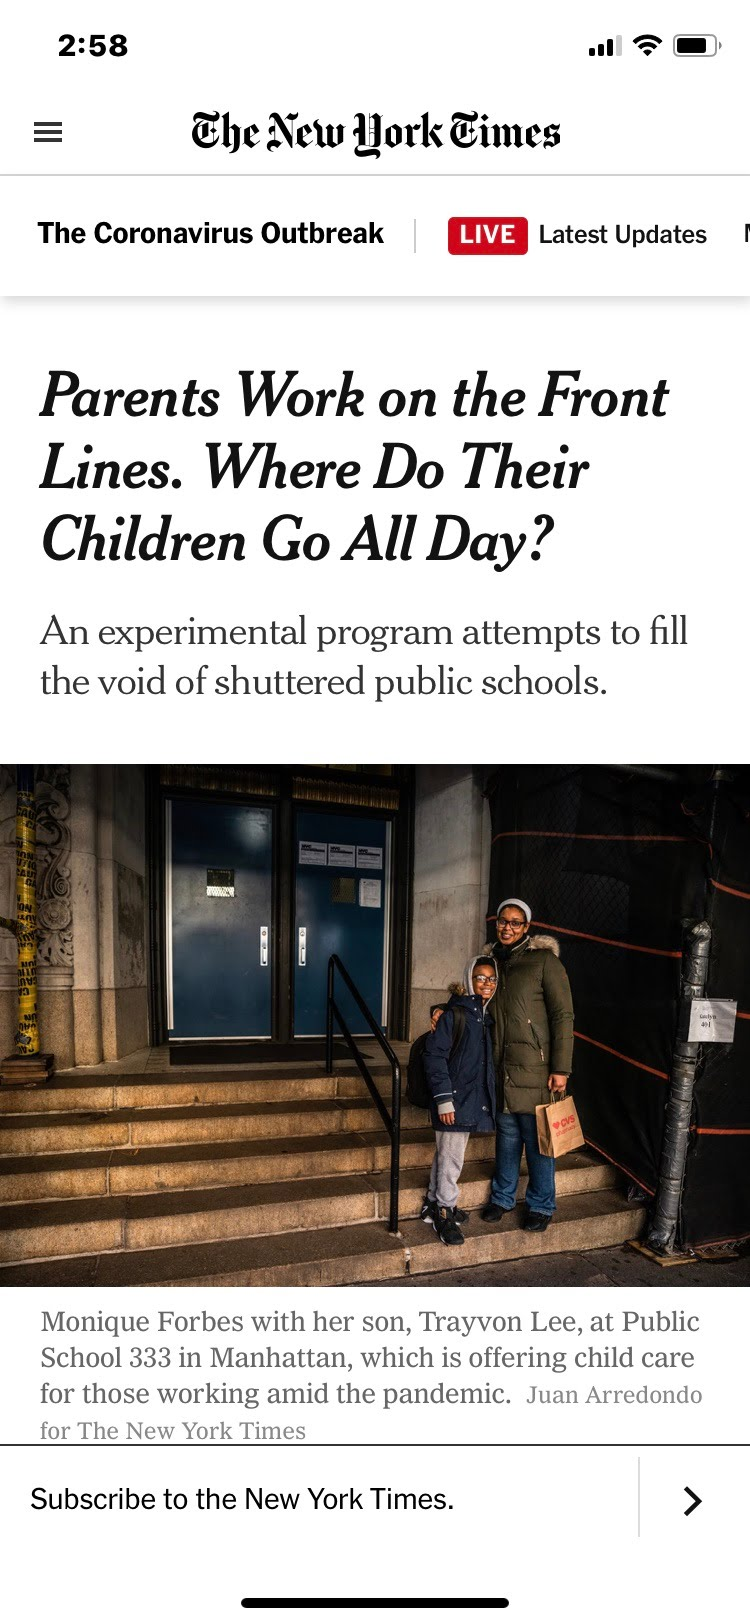 Parents Work on the Front Lines. Where Do Their Children Go All Day? | The New York Times